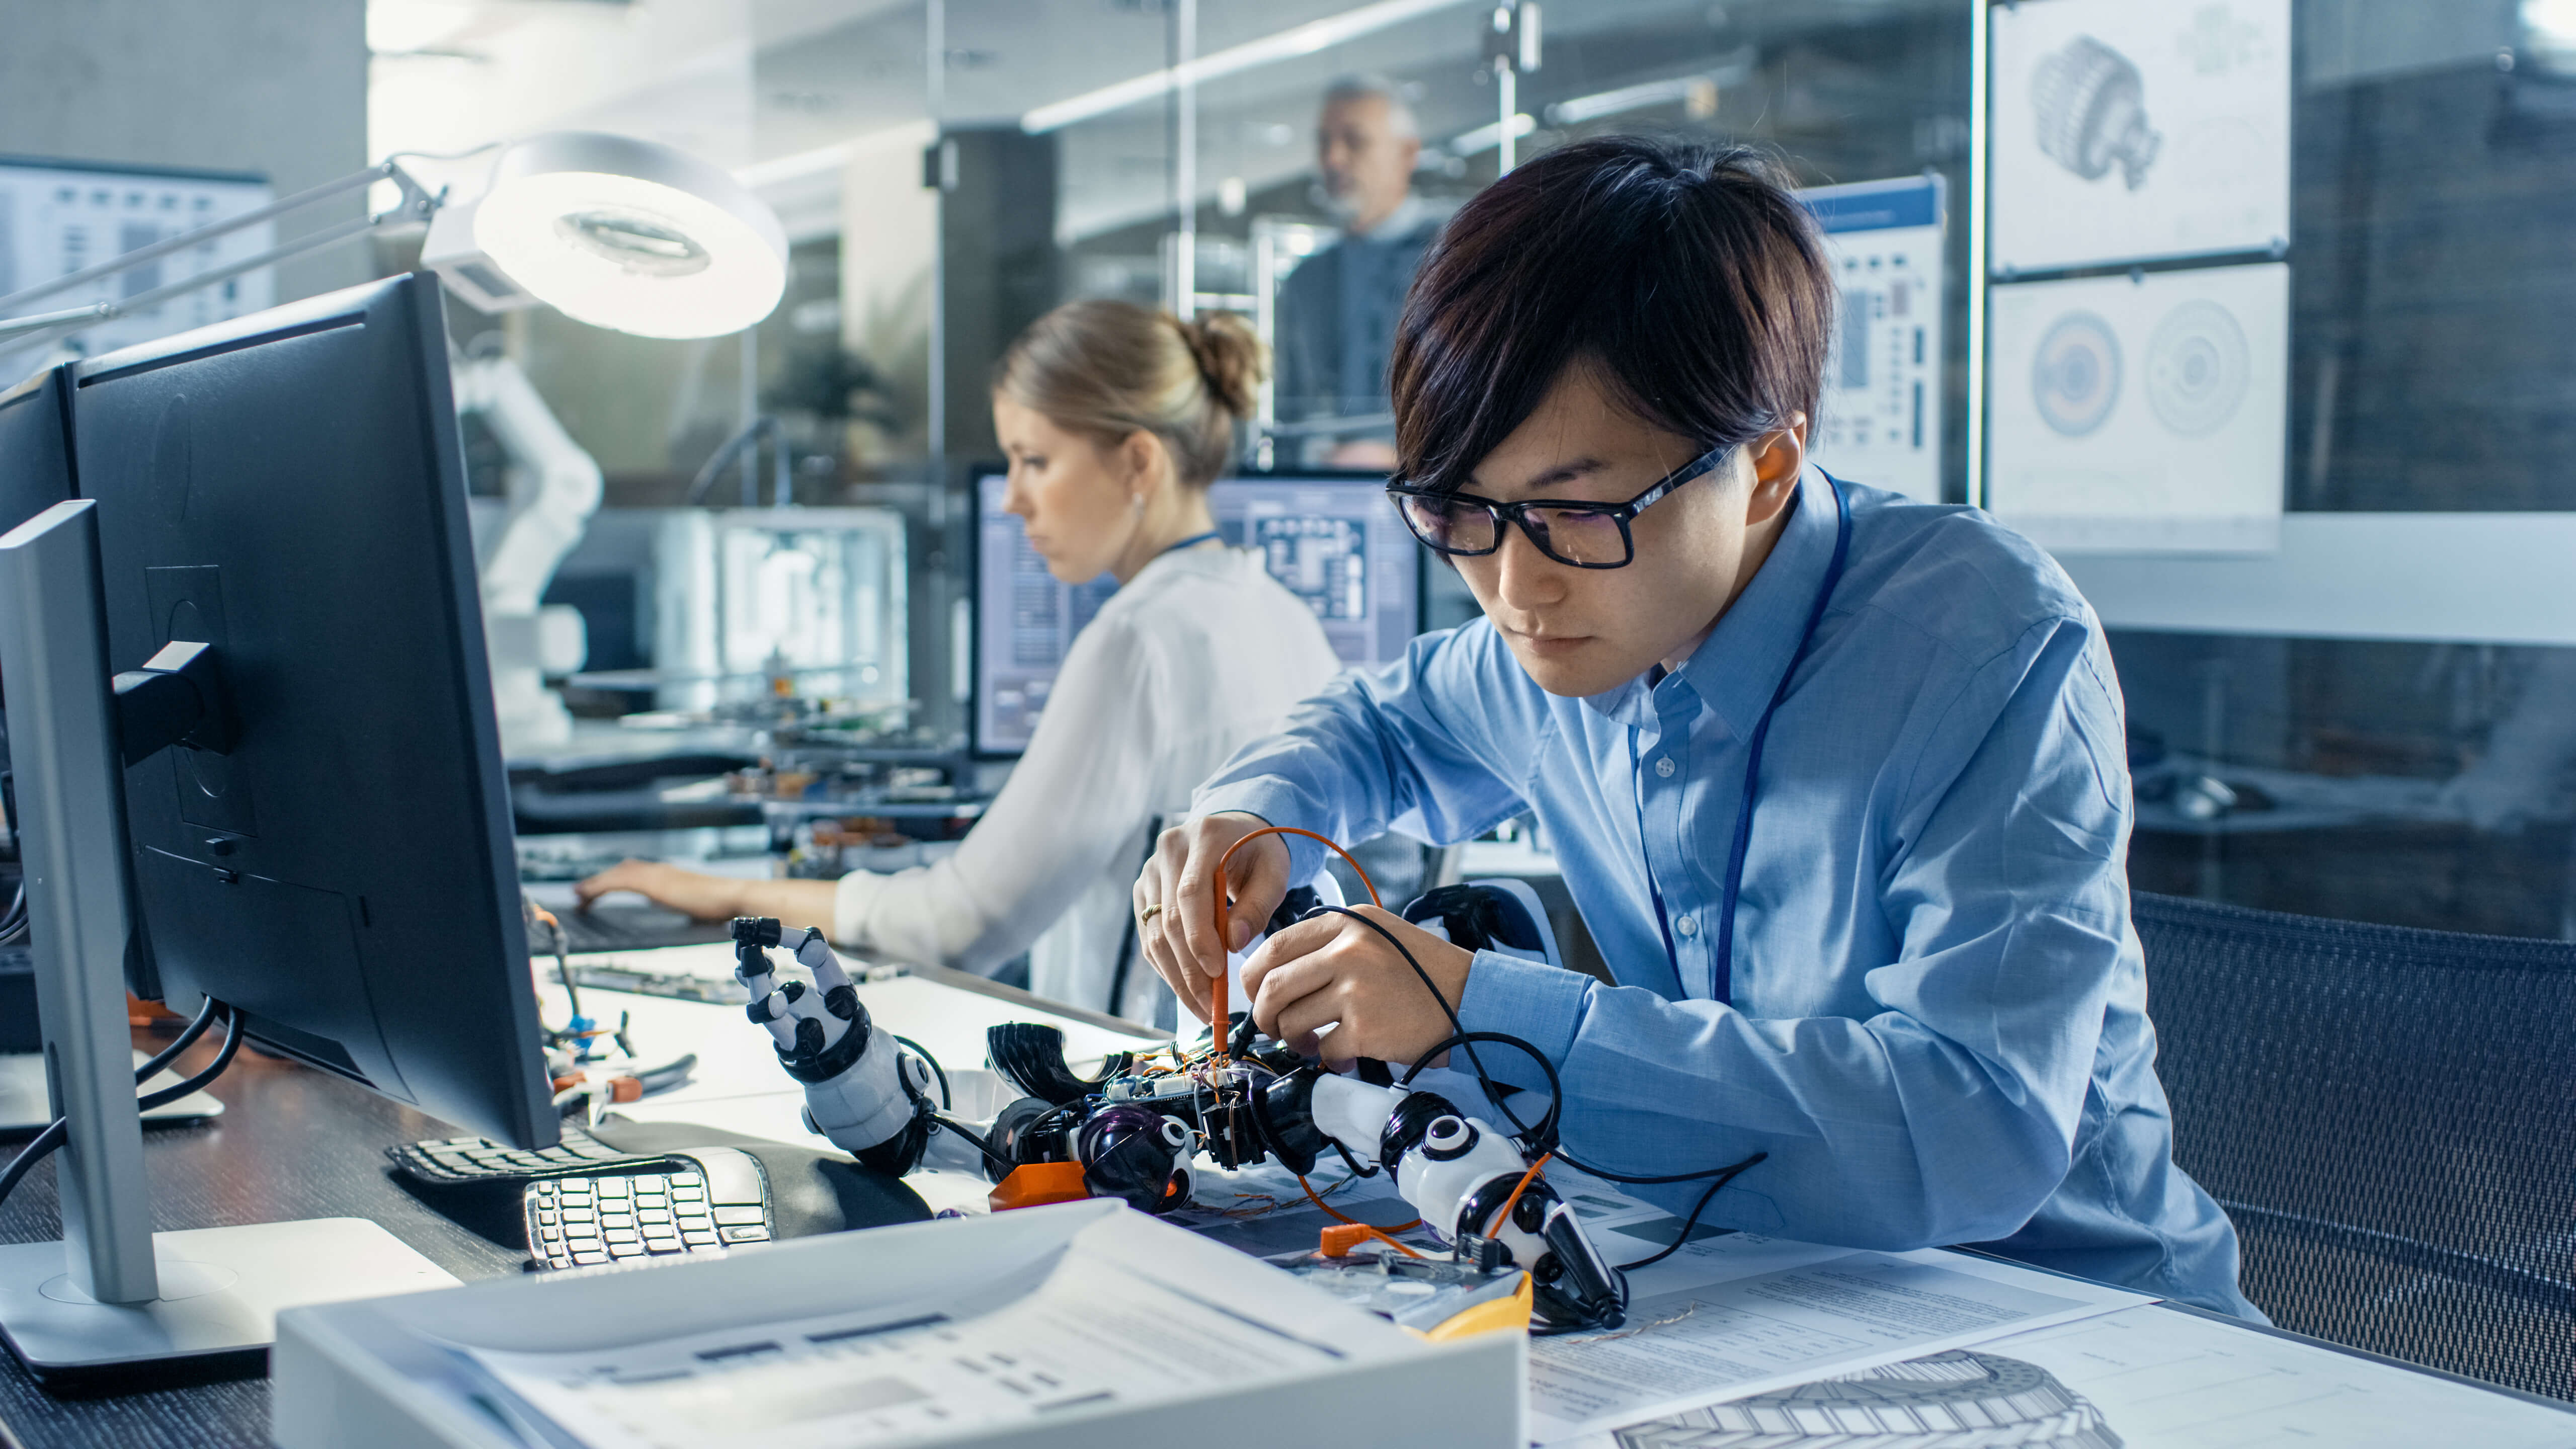 Chinese-born talents who were trained in the United States are becoming a crucial component in fueling country's drive for innovation. Source: Shutterstock.com